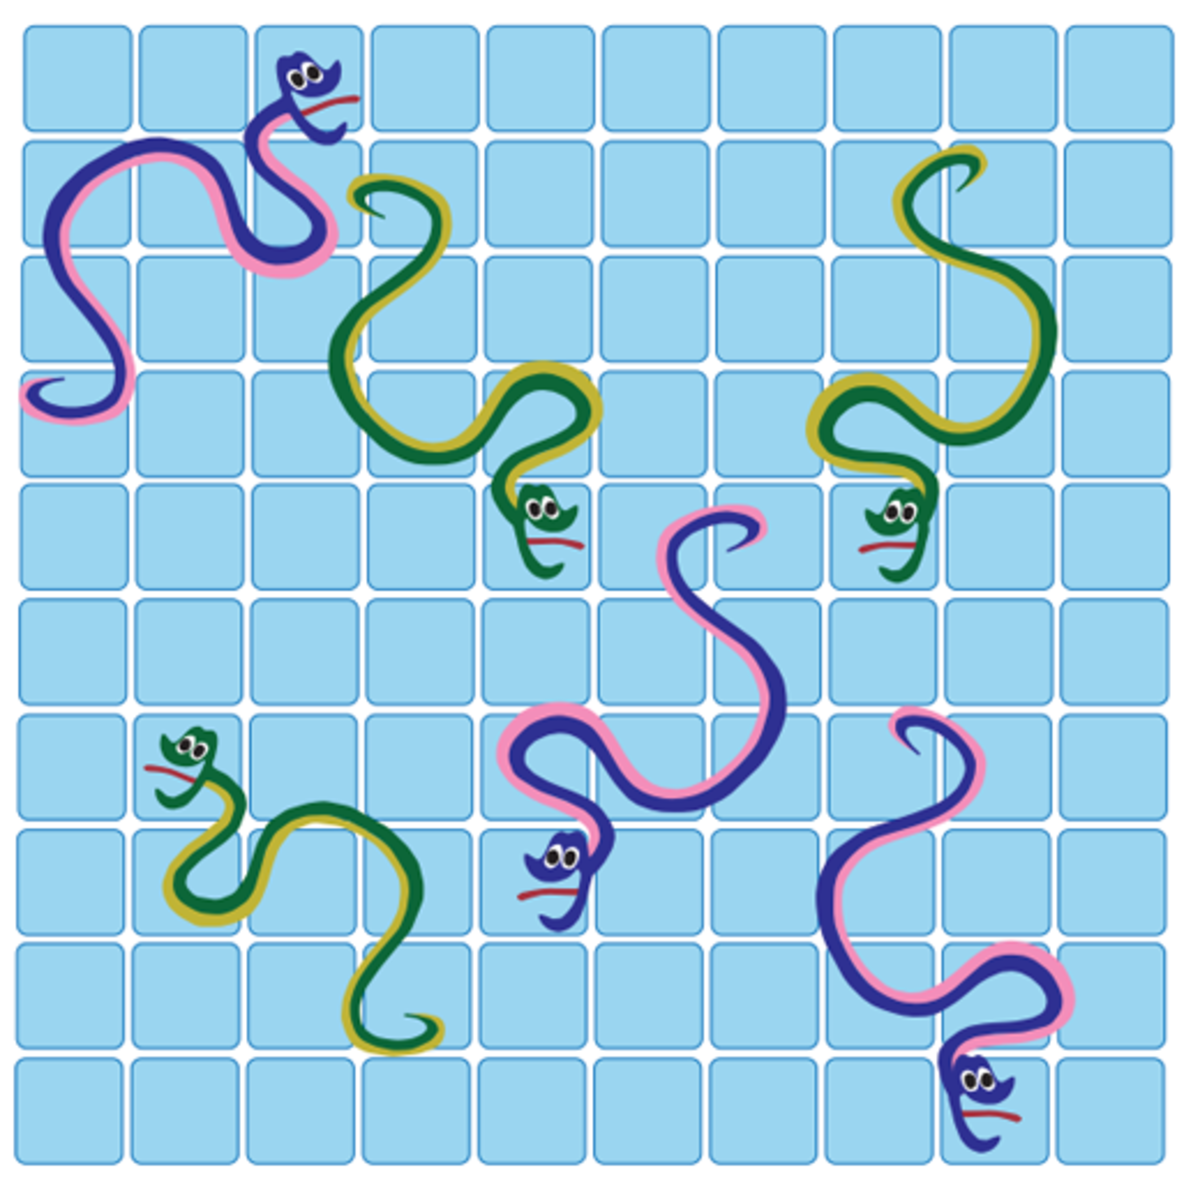 Blank Snakes and Ladders template, with different colored snakes instead of ladders.